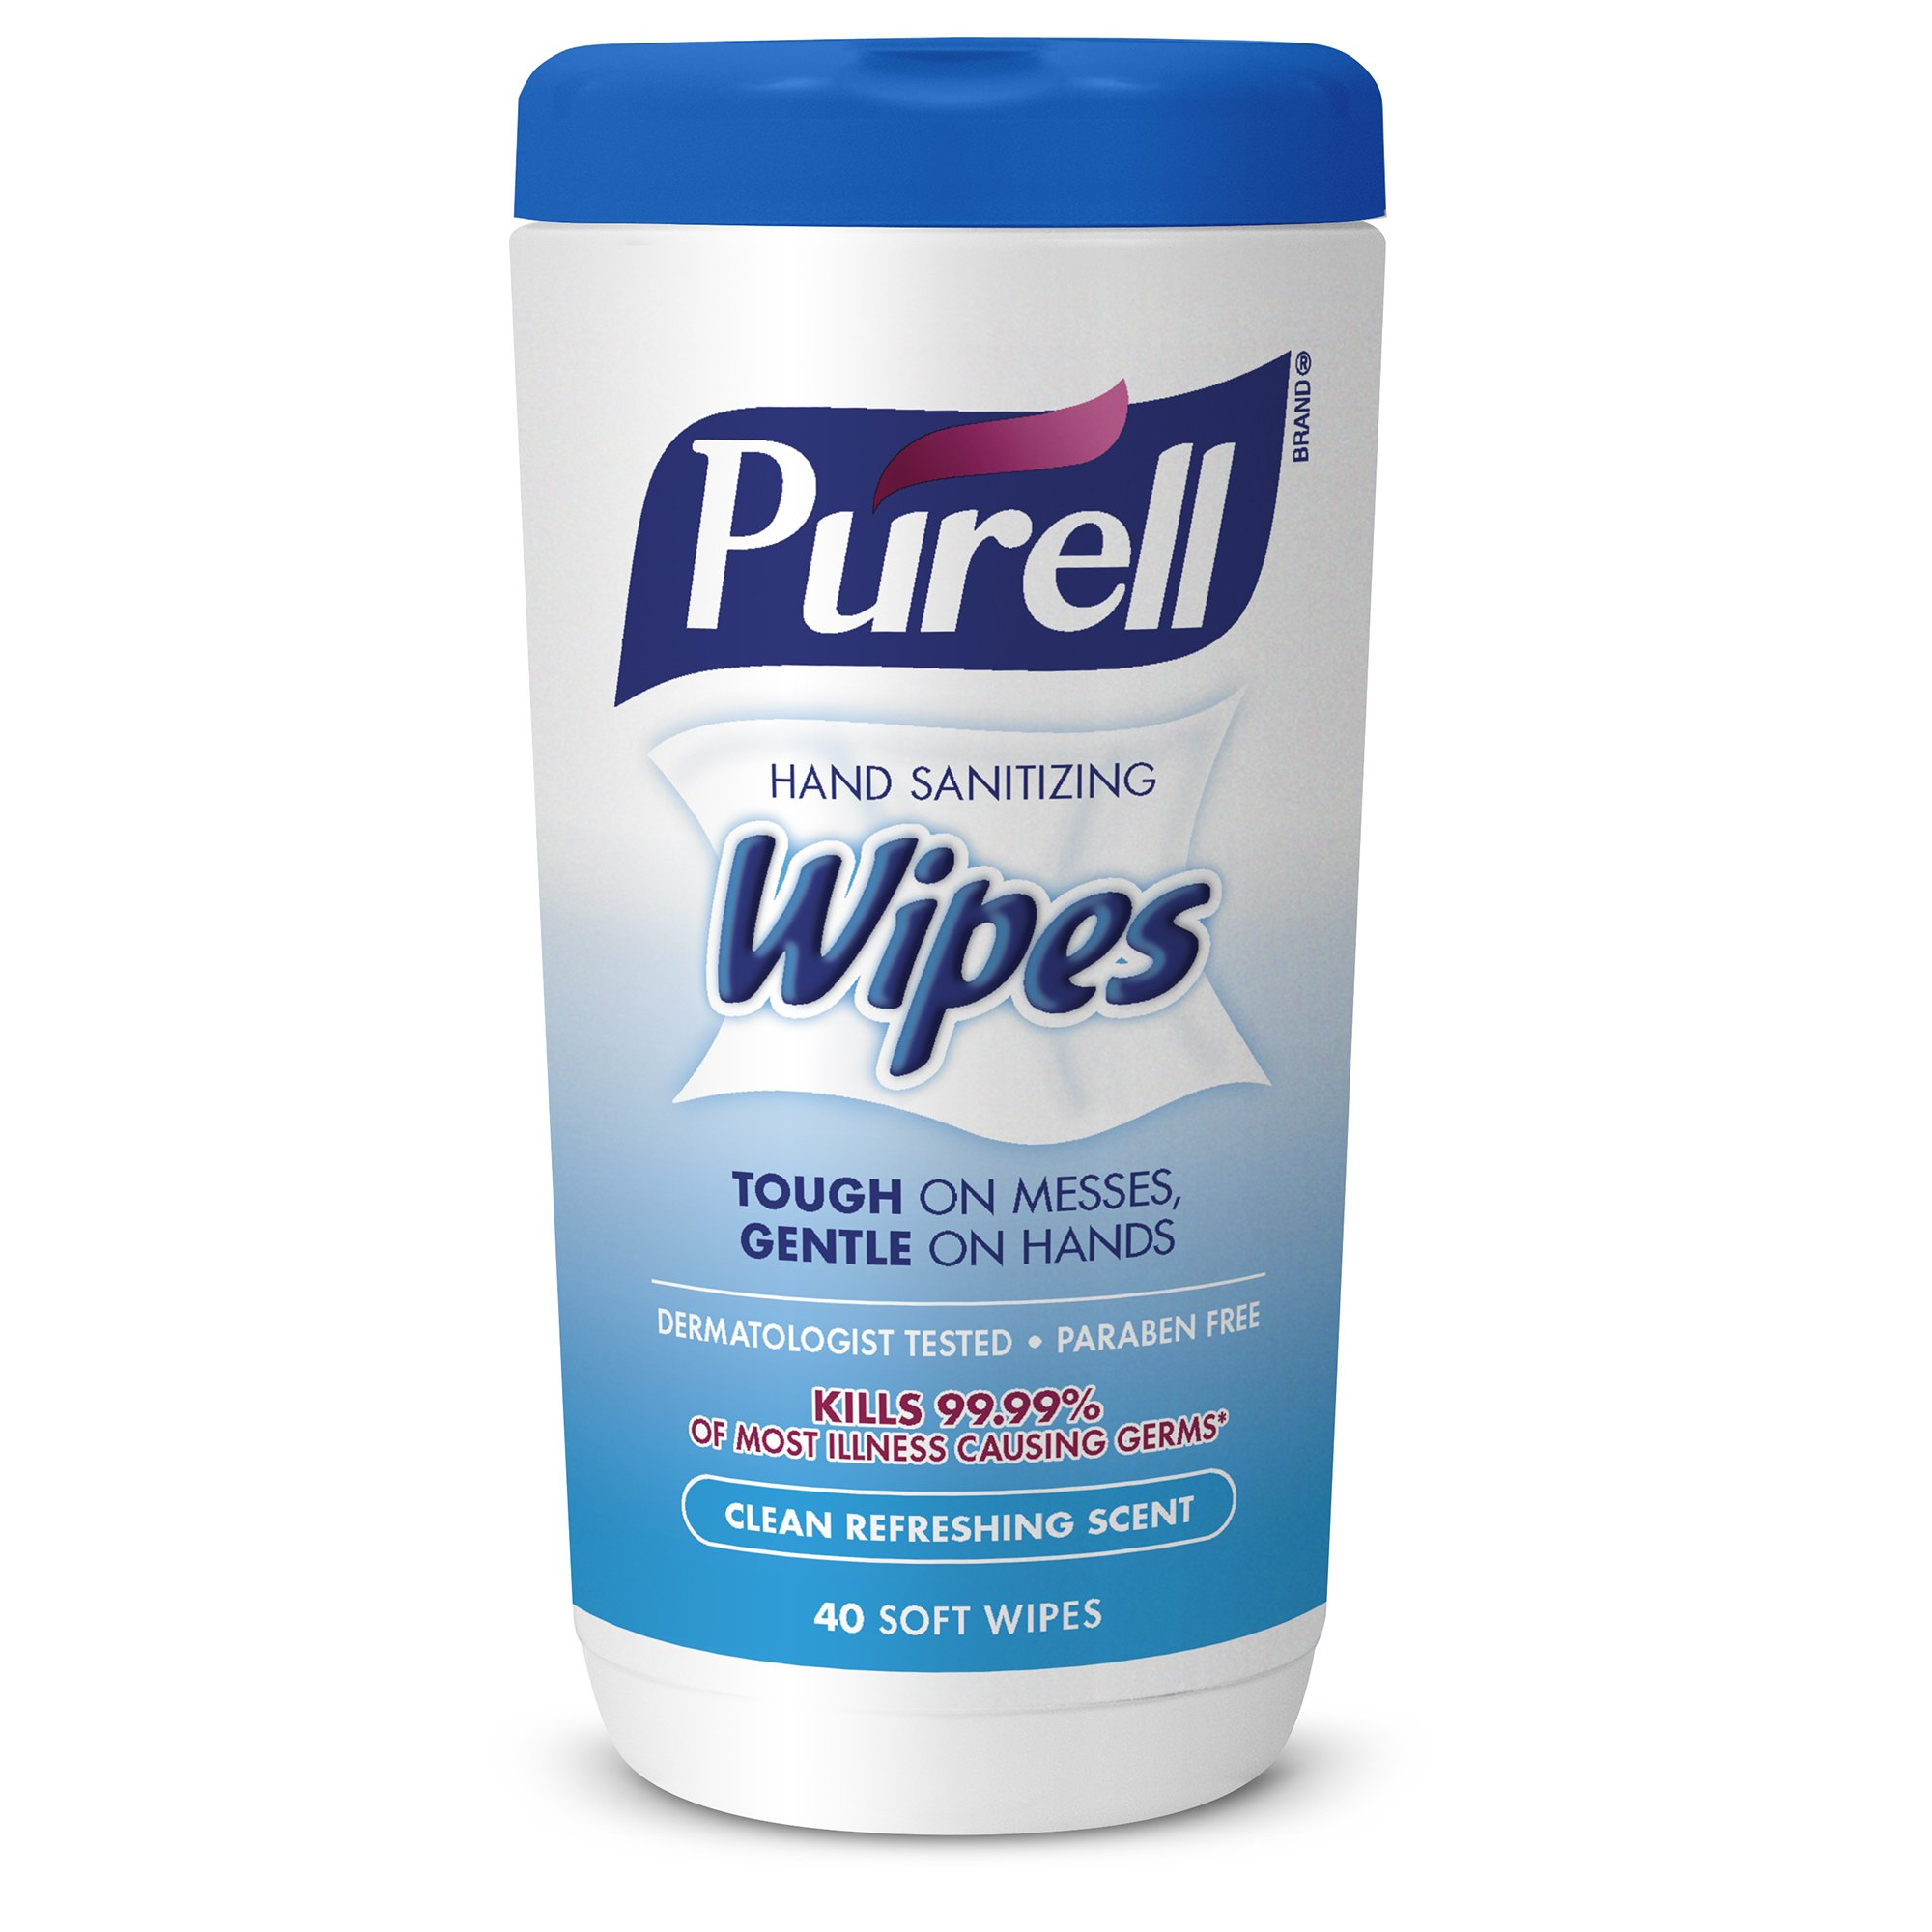 PURELL Hand Sanitizing Wipes - Clean Refreshing Scent, Non-Alcohol Wipes, 40 Count Canisters - 6 pack